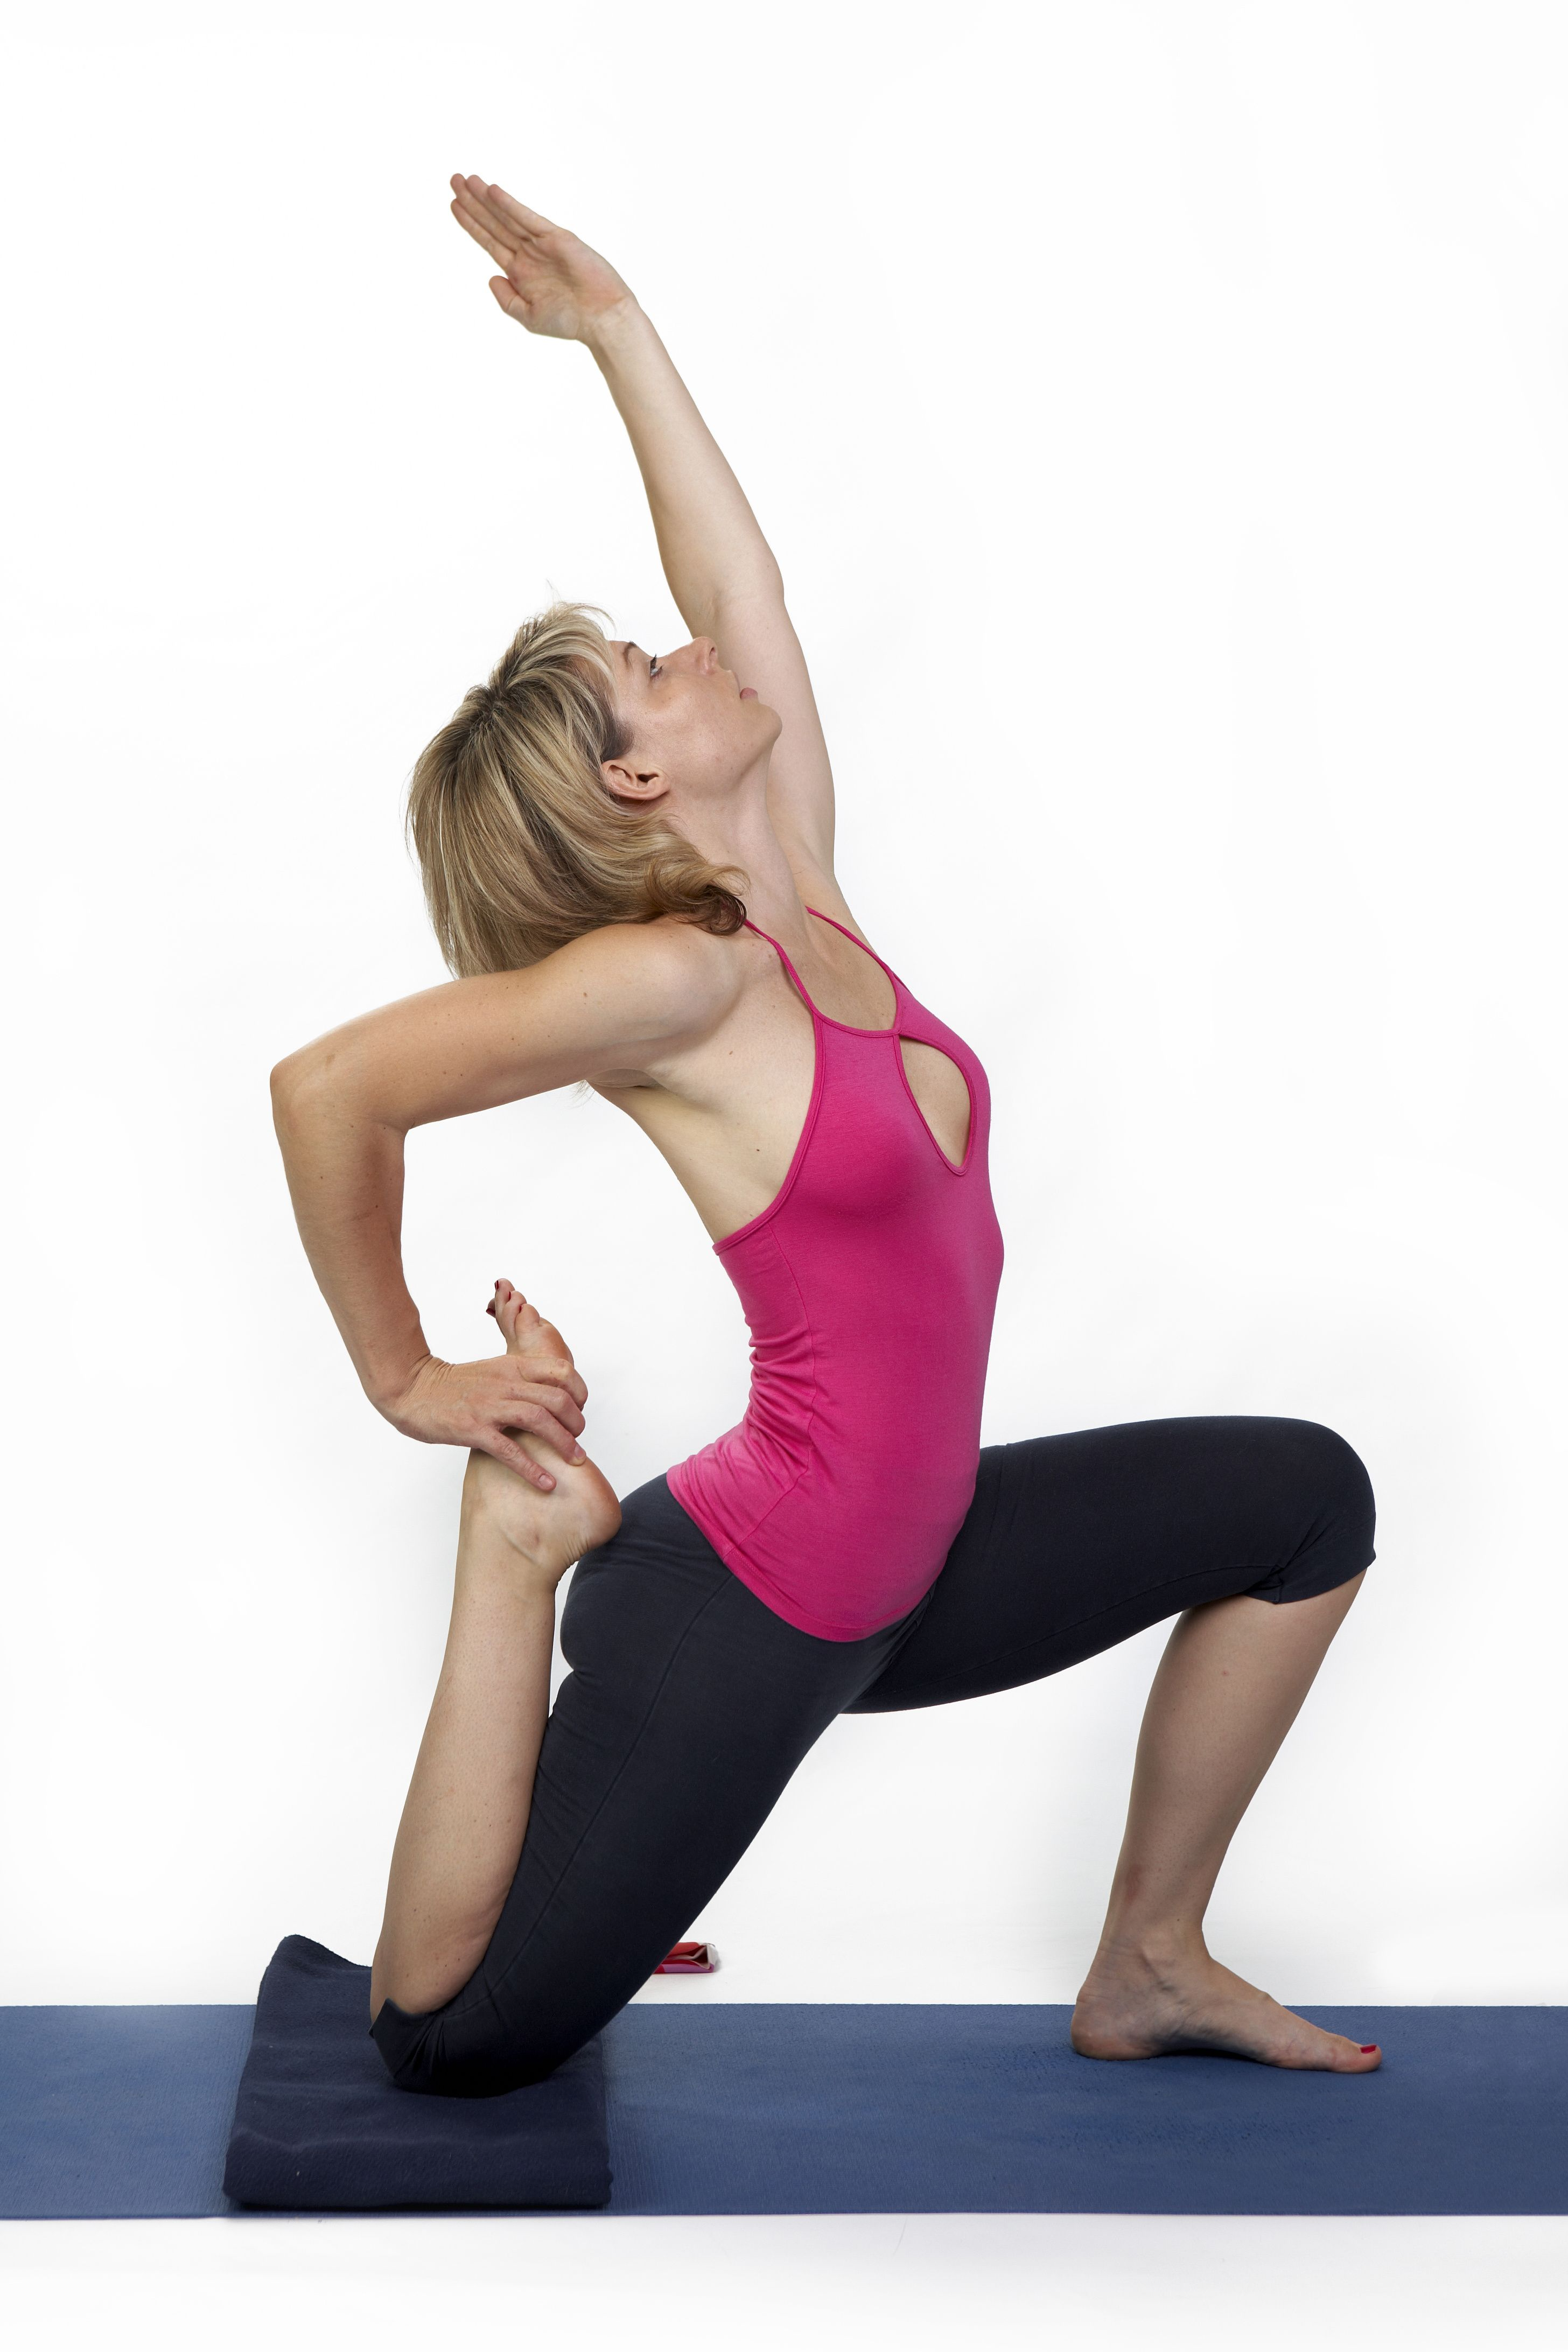 One-Legged King Pigeon Pose - stimulating your abdomen and all